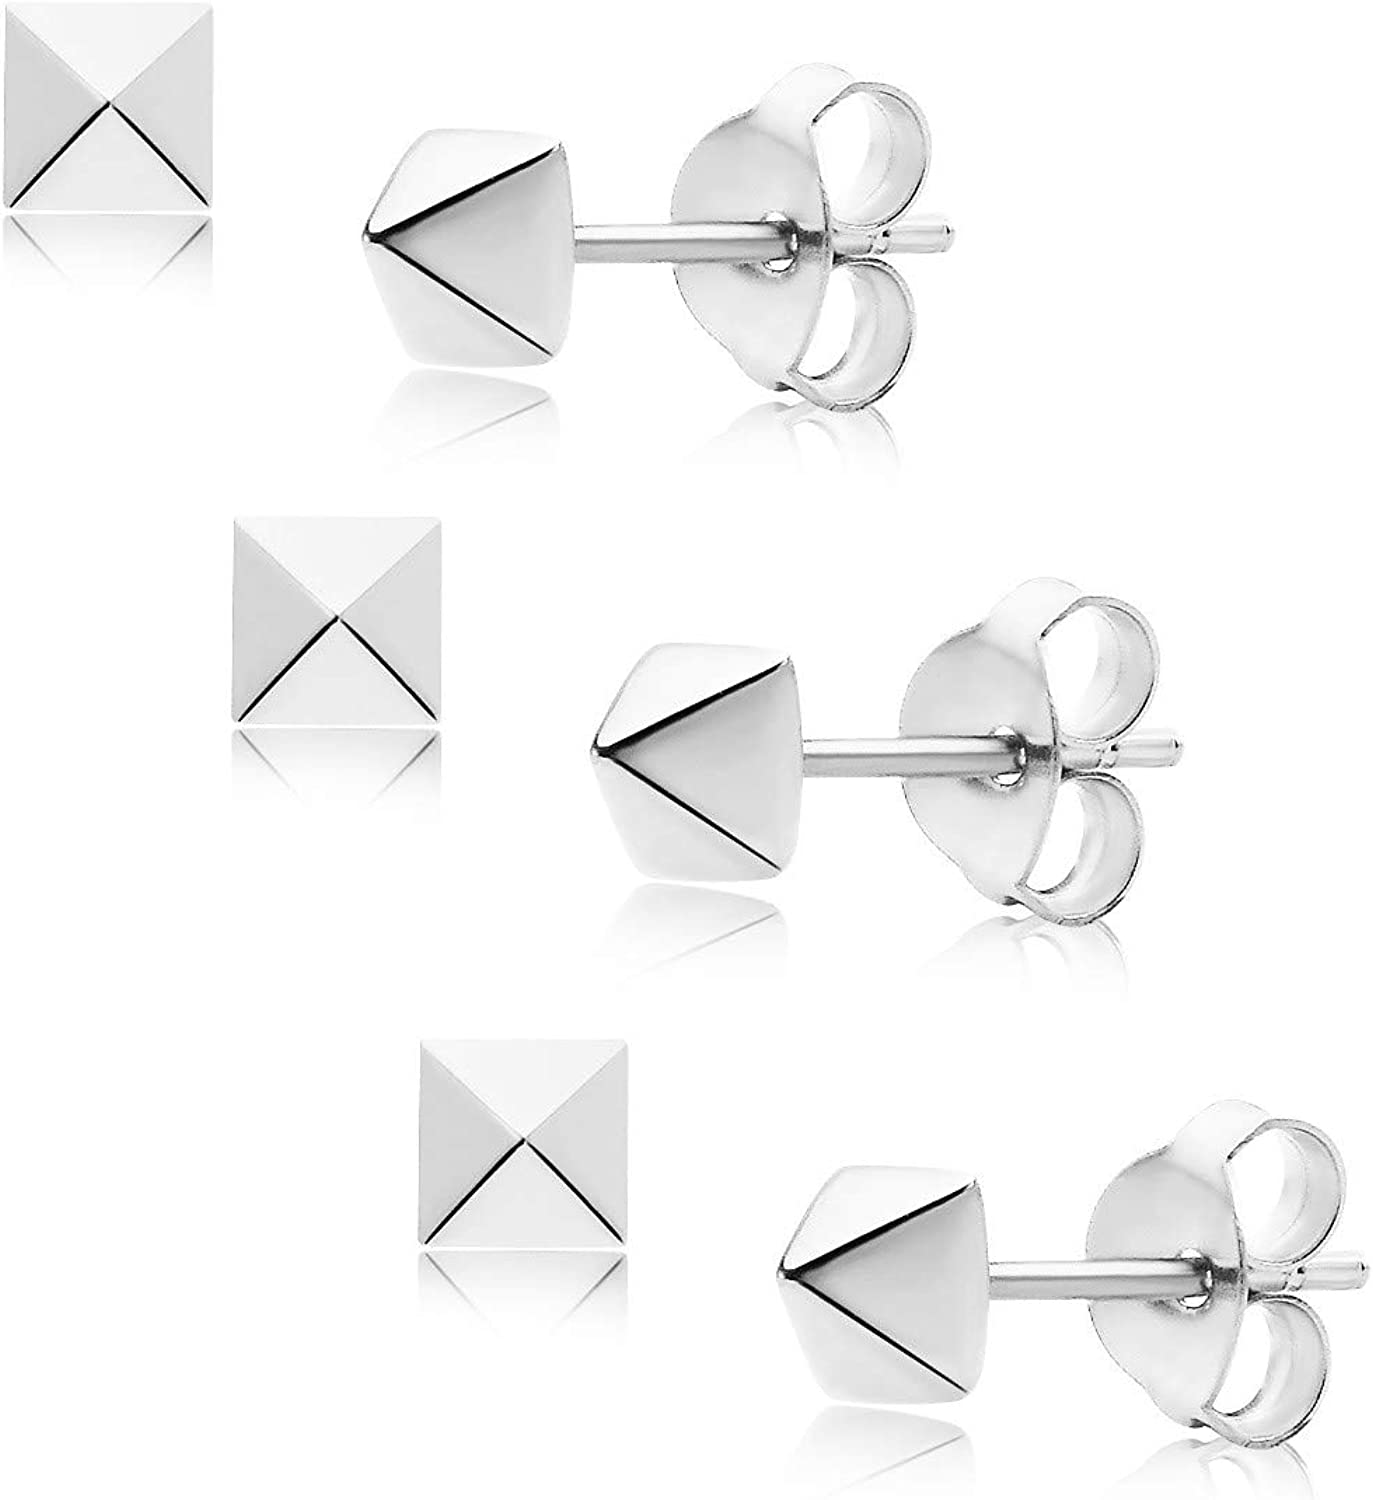 Big Apple Hoops - High Polish Sterling Silver 3 Pair Set of Square Pyramid Small Stud Earrings Made from Genuine 925 Sterling Silver in 4 Colors Silver, Gold, Rose, Black Gift for Men, Teens, Women